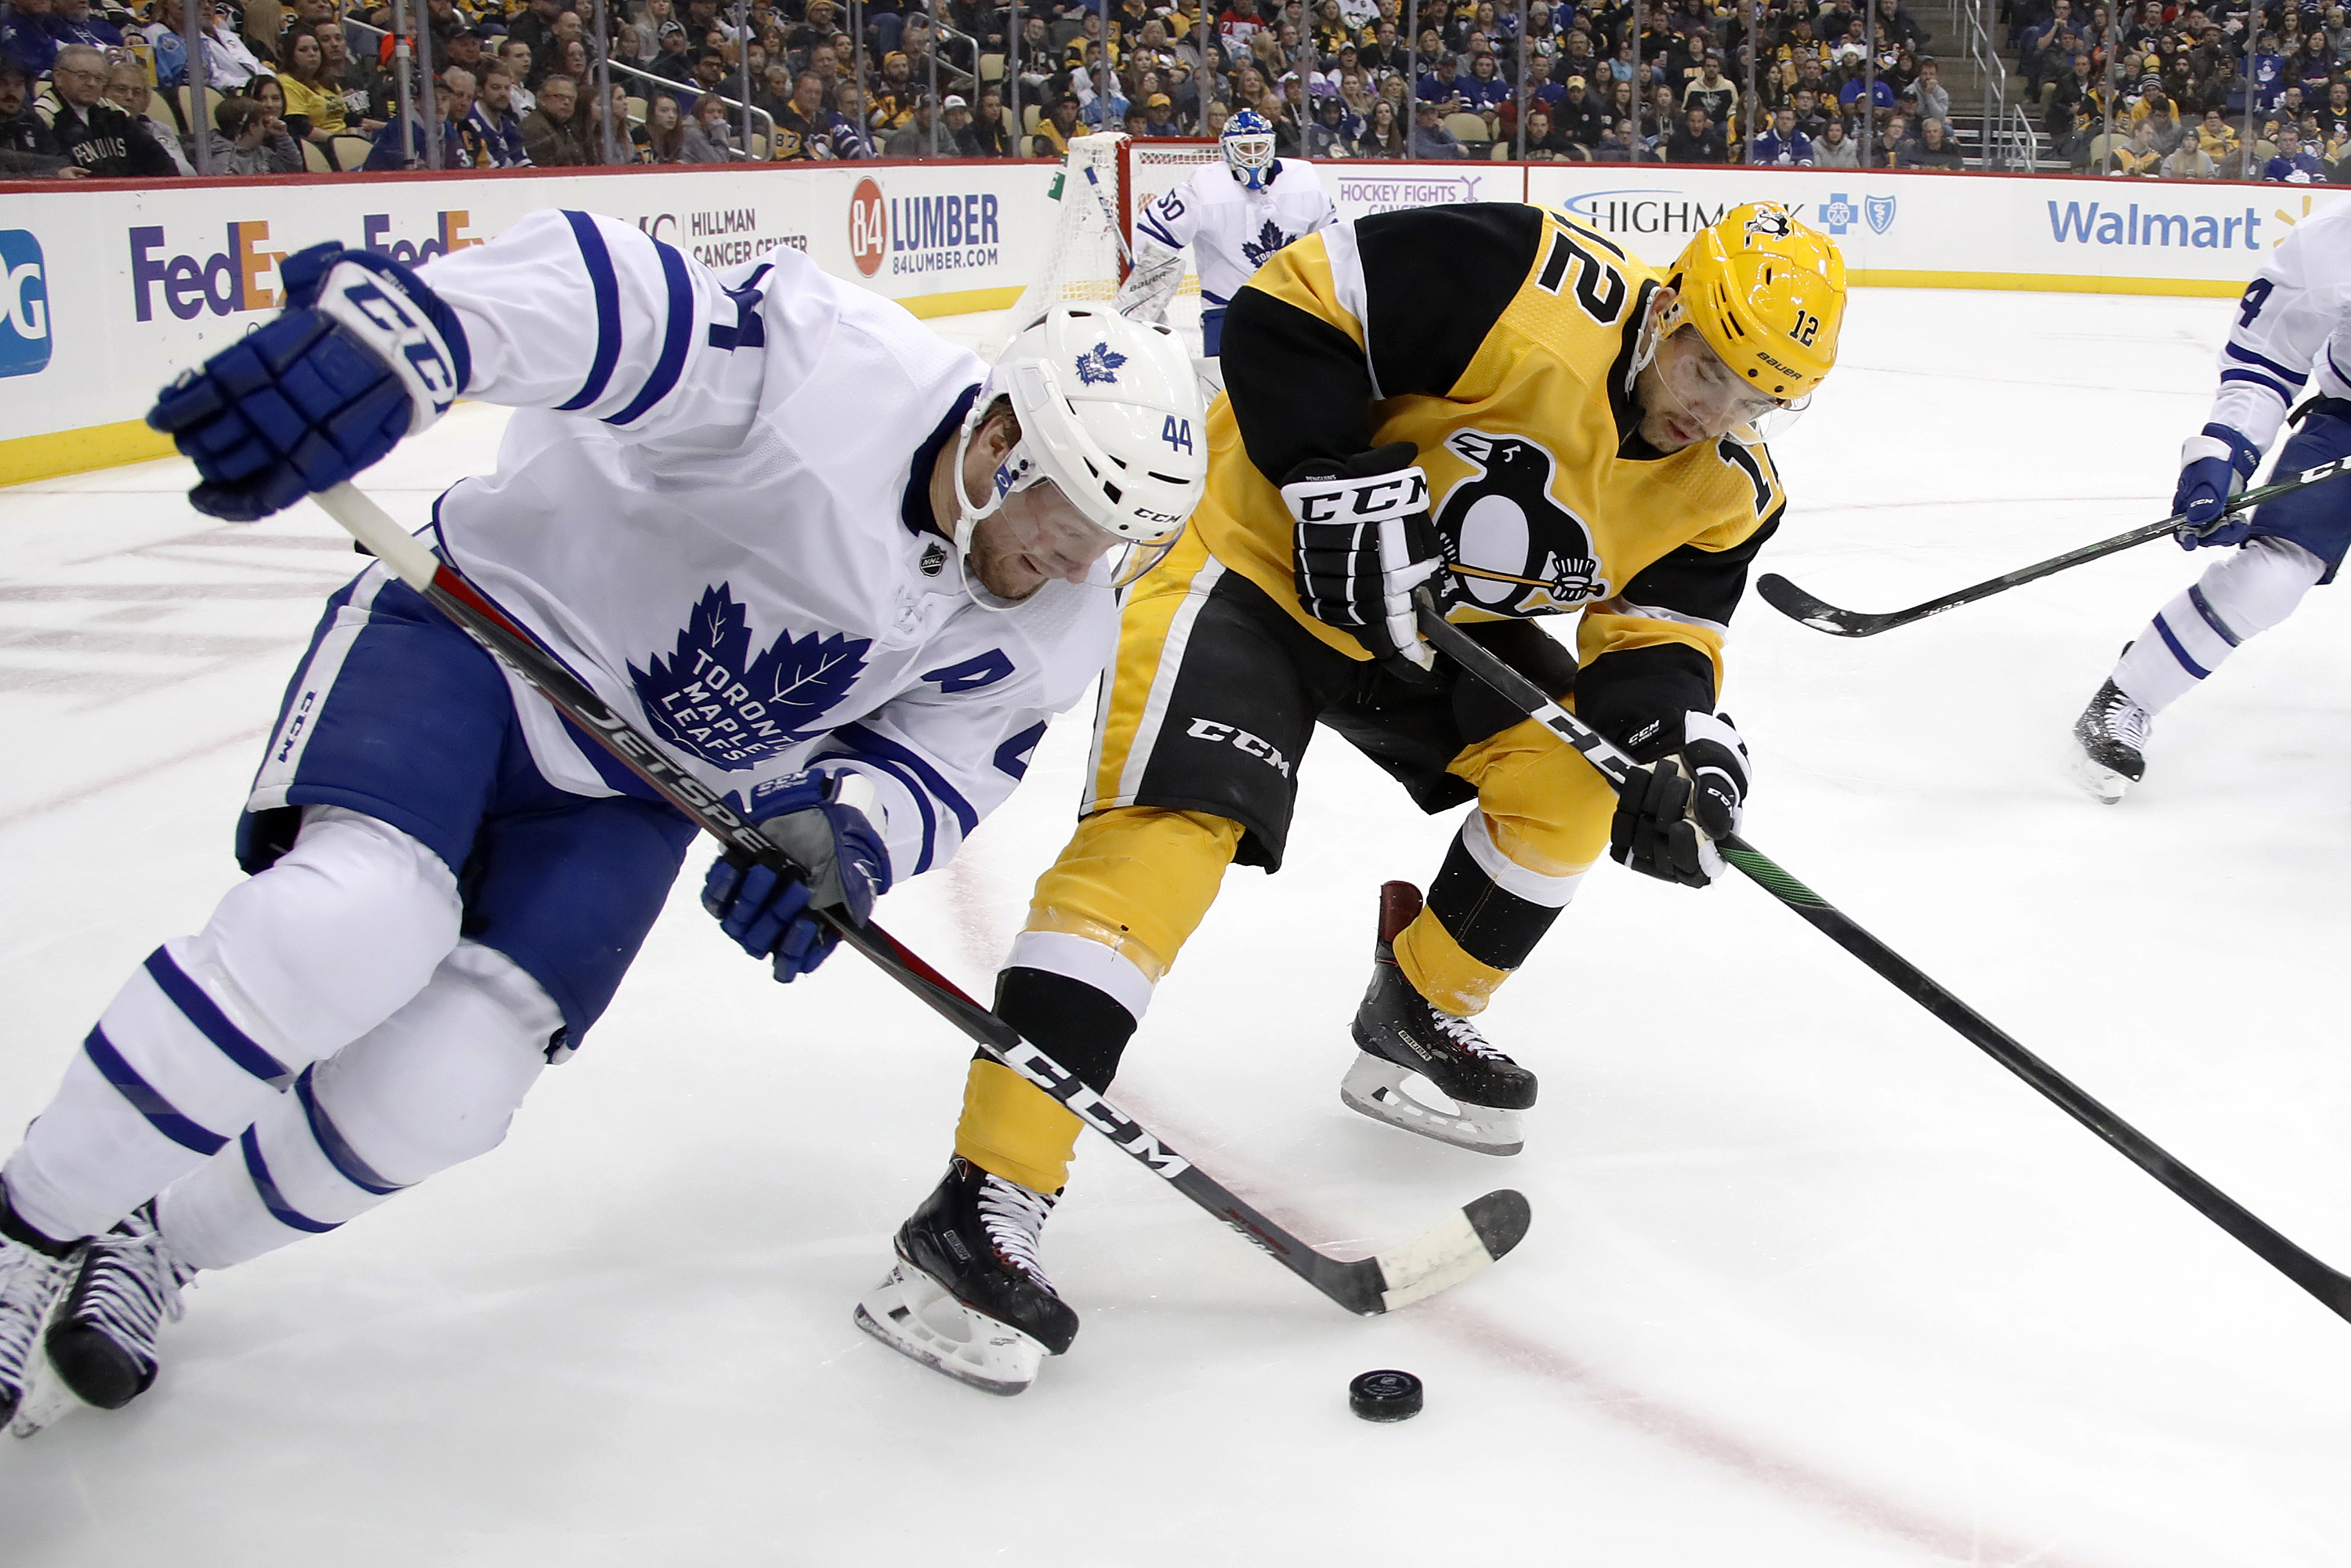 Kahun scores twice, Penguins rout Maple Leafs 6-1